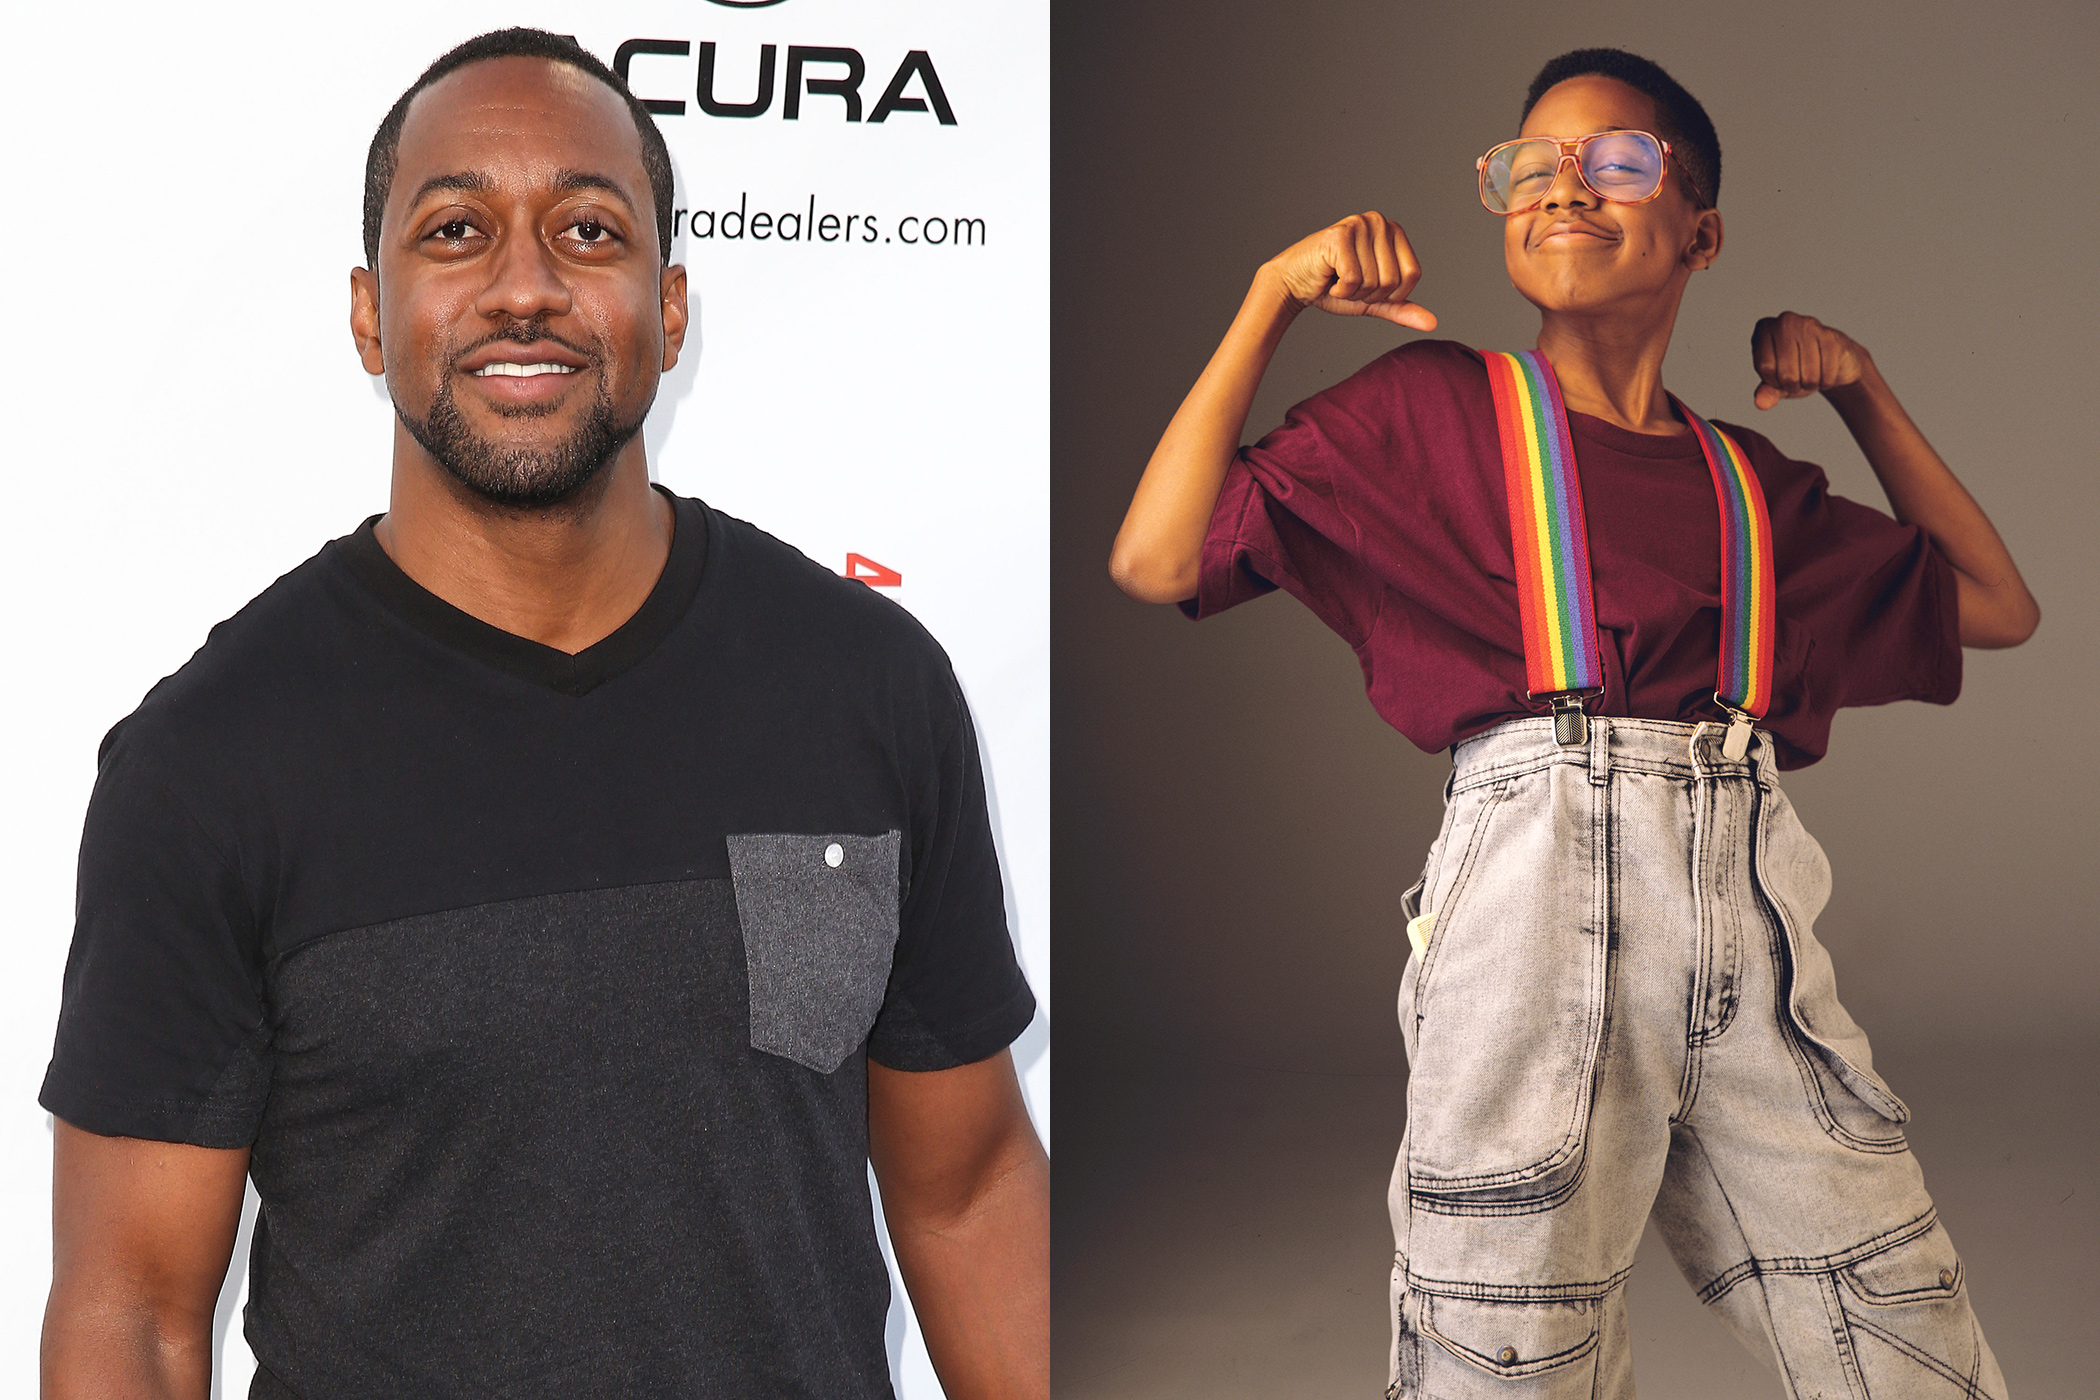 <strong>Jaleel White.</strong>                                   The man behind Steve Urkel—the most famous of all TGIF's characters—went on to study film and television production at UCLA. He also continued to act, doing television guest spots and voice work. This year, fans might have spotted him playing Grandmaster Caz on Comedy Central's Drunk History.